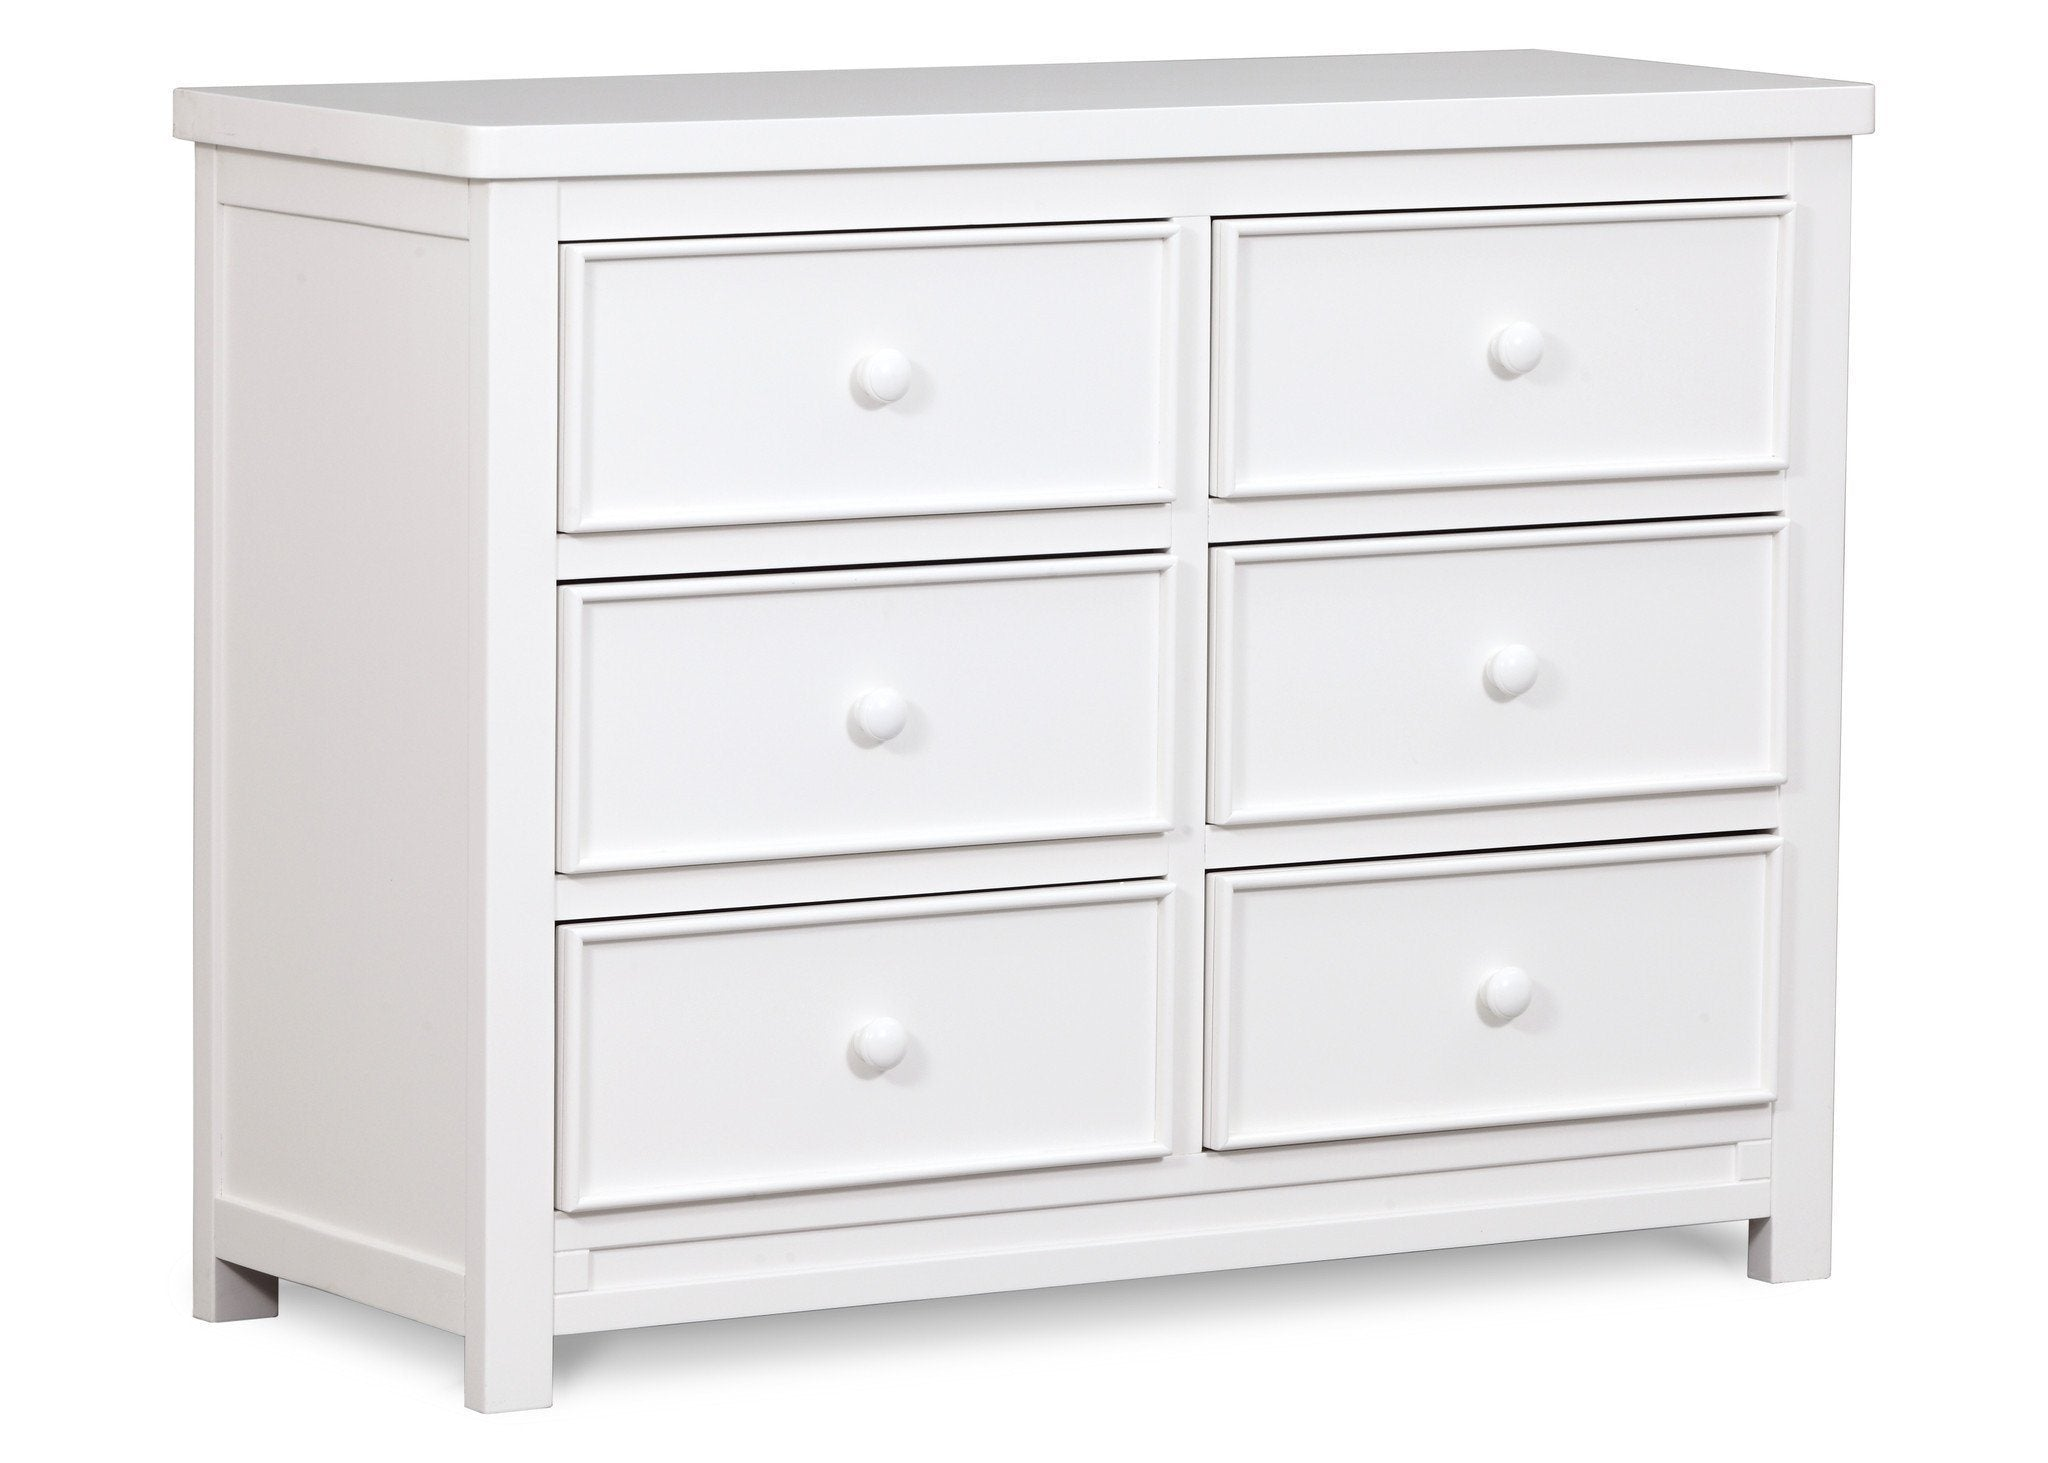 Delta Children White Ambiance (108) Bennington Sleigh 6-Drawer Dresser Side View a2a